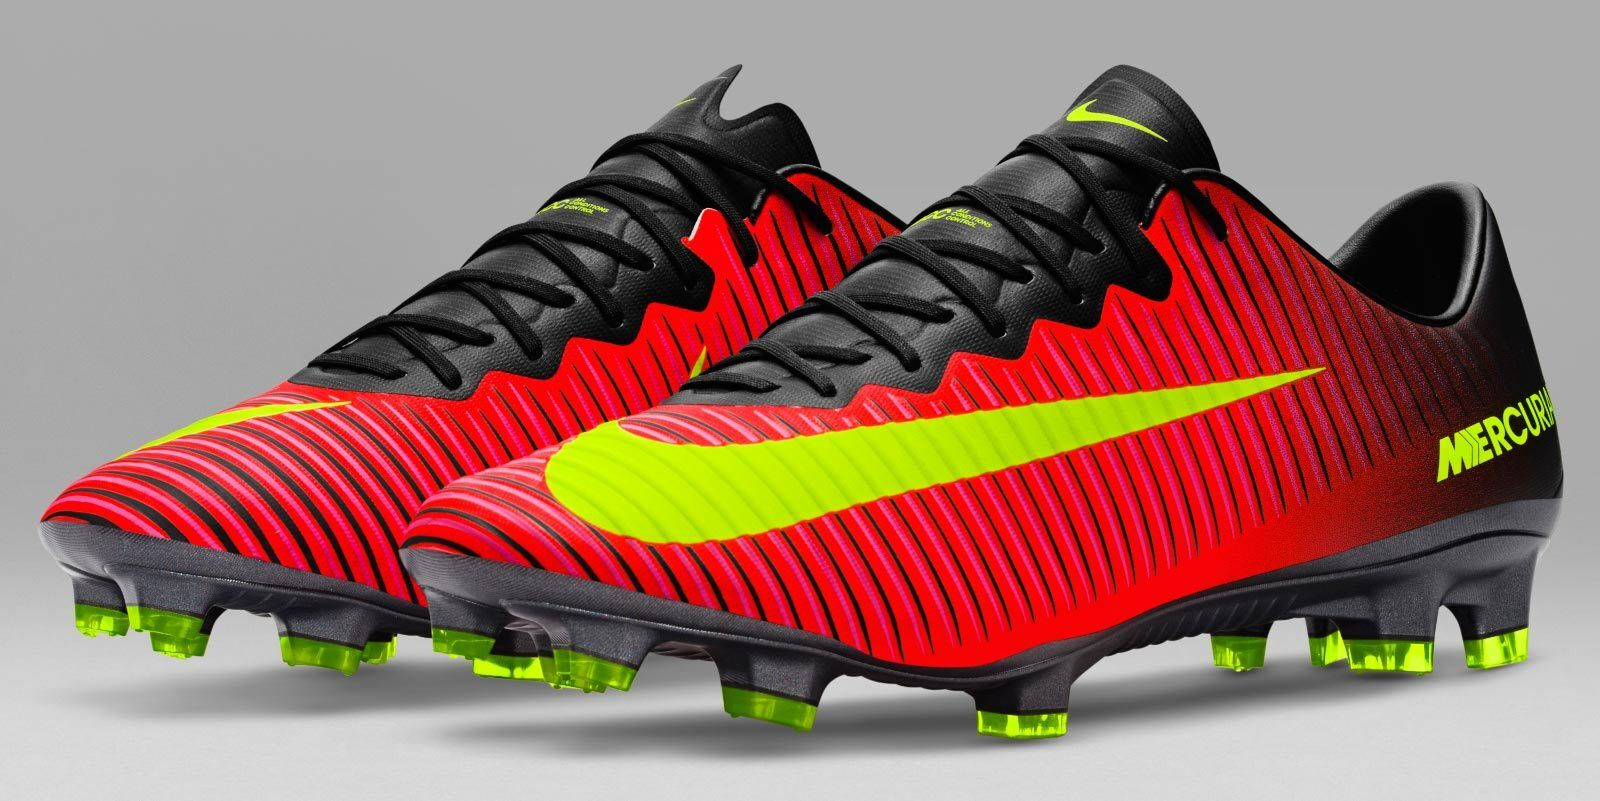 d28a4e77 Yükle (960x960)Nike Mercurial Victory VI FG - Mens Boots - Firm Ground -  Pure Platinum/Black/Ghost GreenNike Mercurial Victory VI FG - Mens Boots -  Firm ...